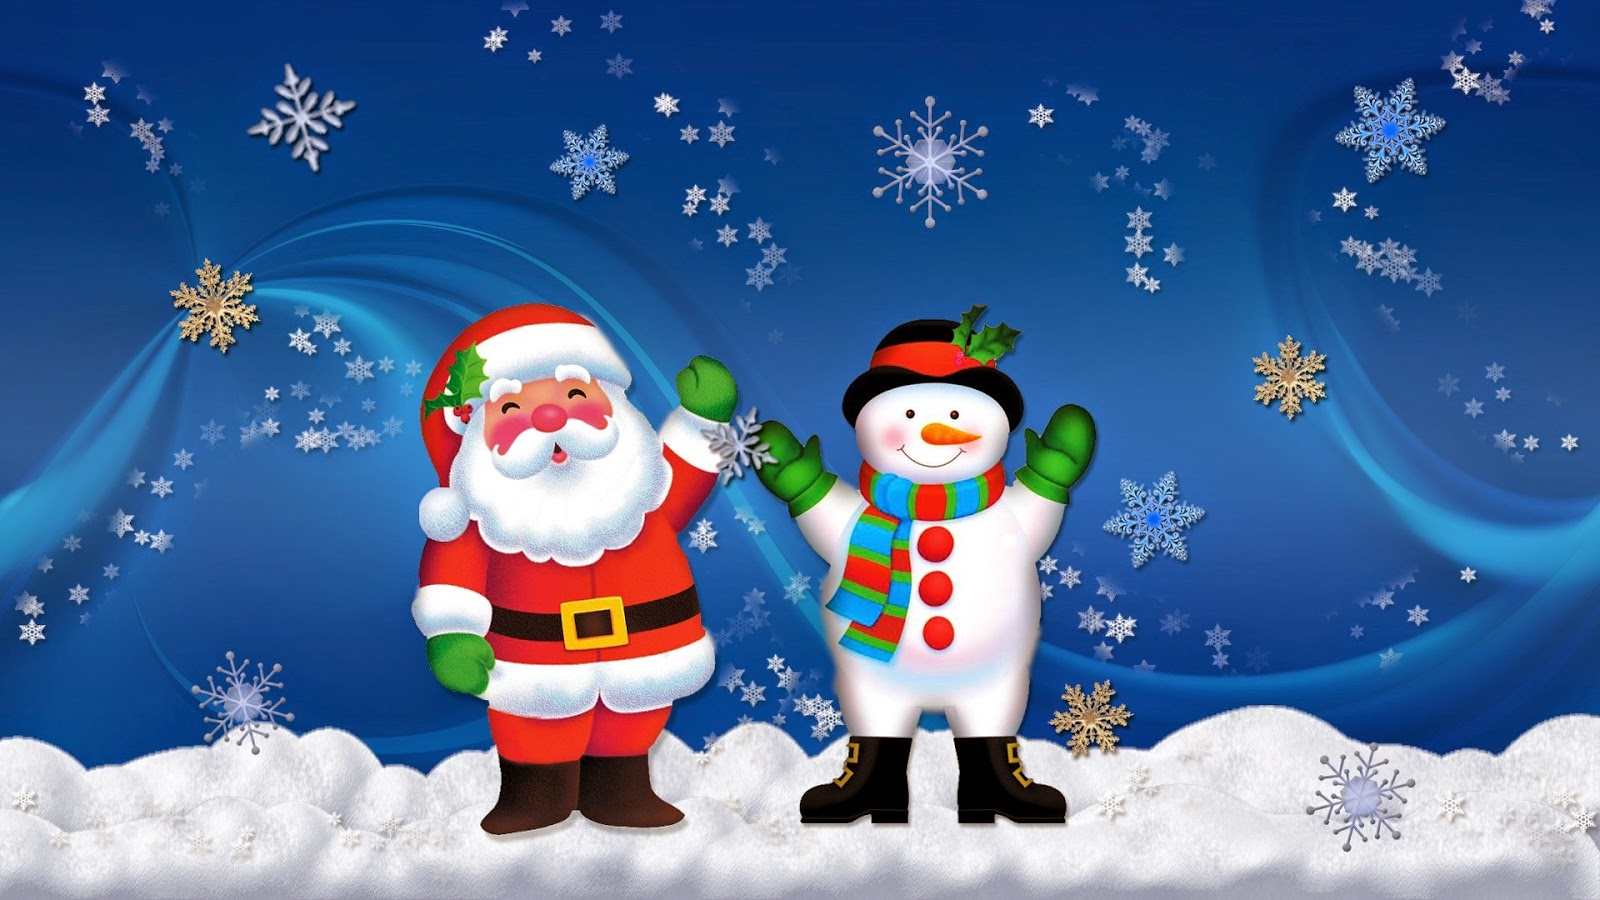 Santa-and-snowman-cartoon-image-picture-for-kids-children-greetings-wishes-free-download.jpg